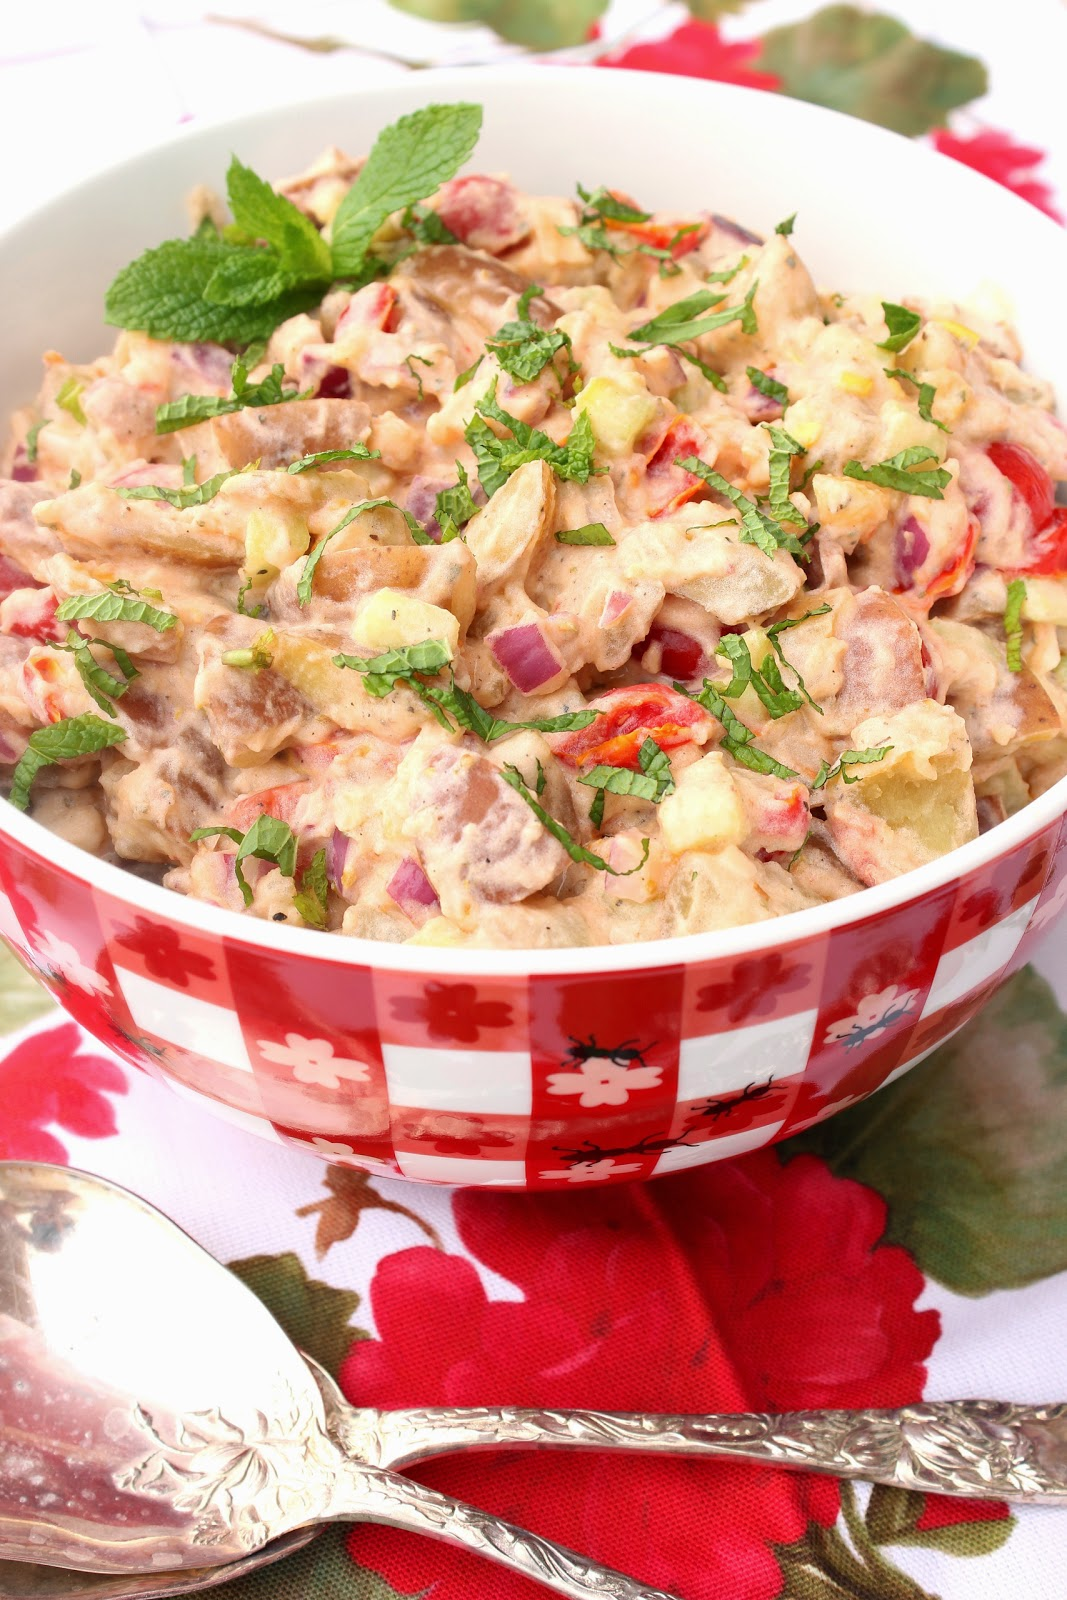 ... : Tzatziki Potato Salad for #SundaySupper featuring Idaho®Potatoes